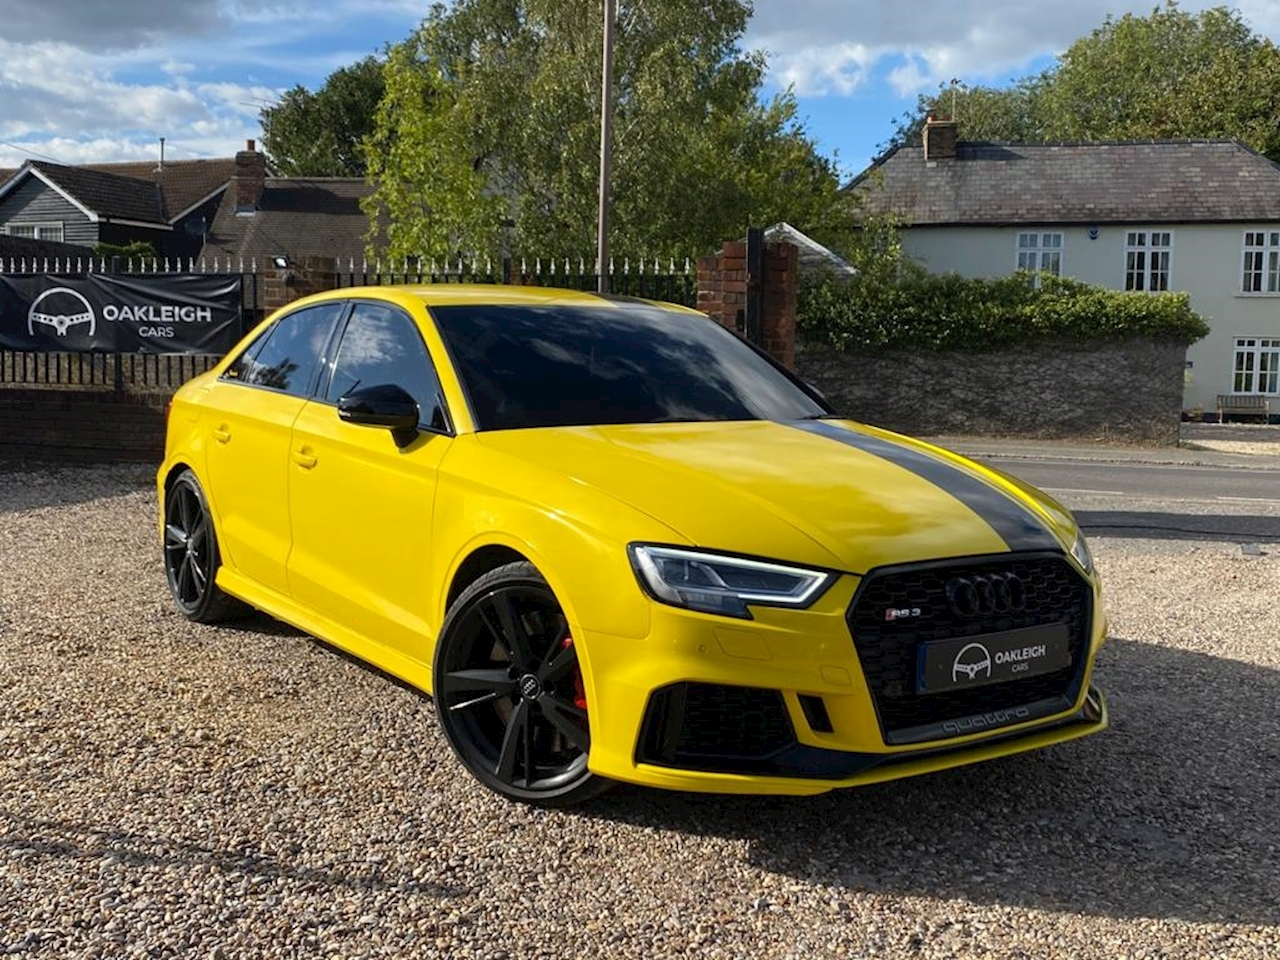 Audi RS3 2.5 TFSI Saloon 4dr Petrol S Tronic quattro (s/s) (400 ps) 2.5 4dr Saloon S Tronic Petrol